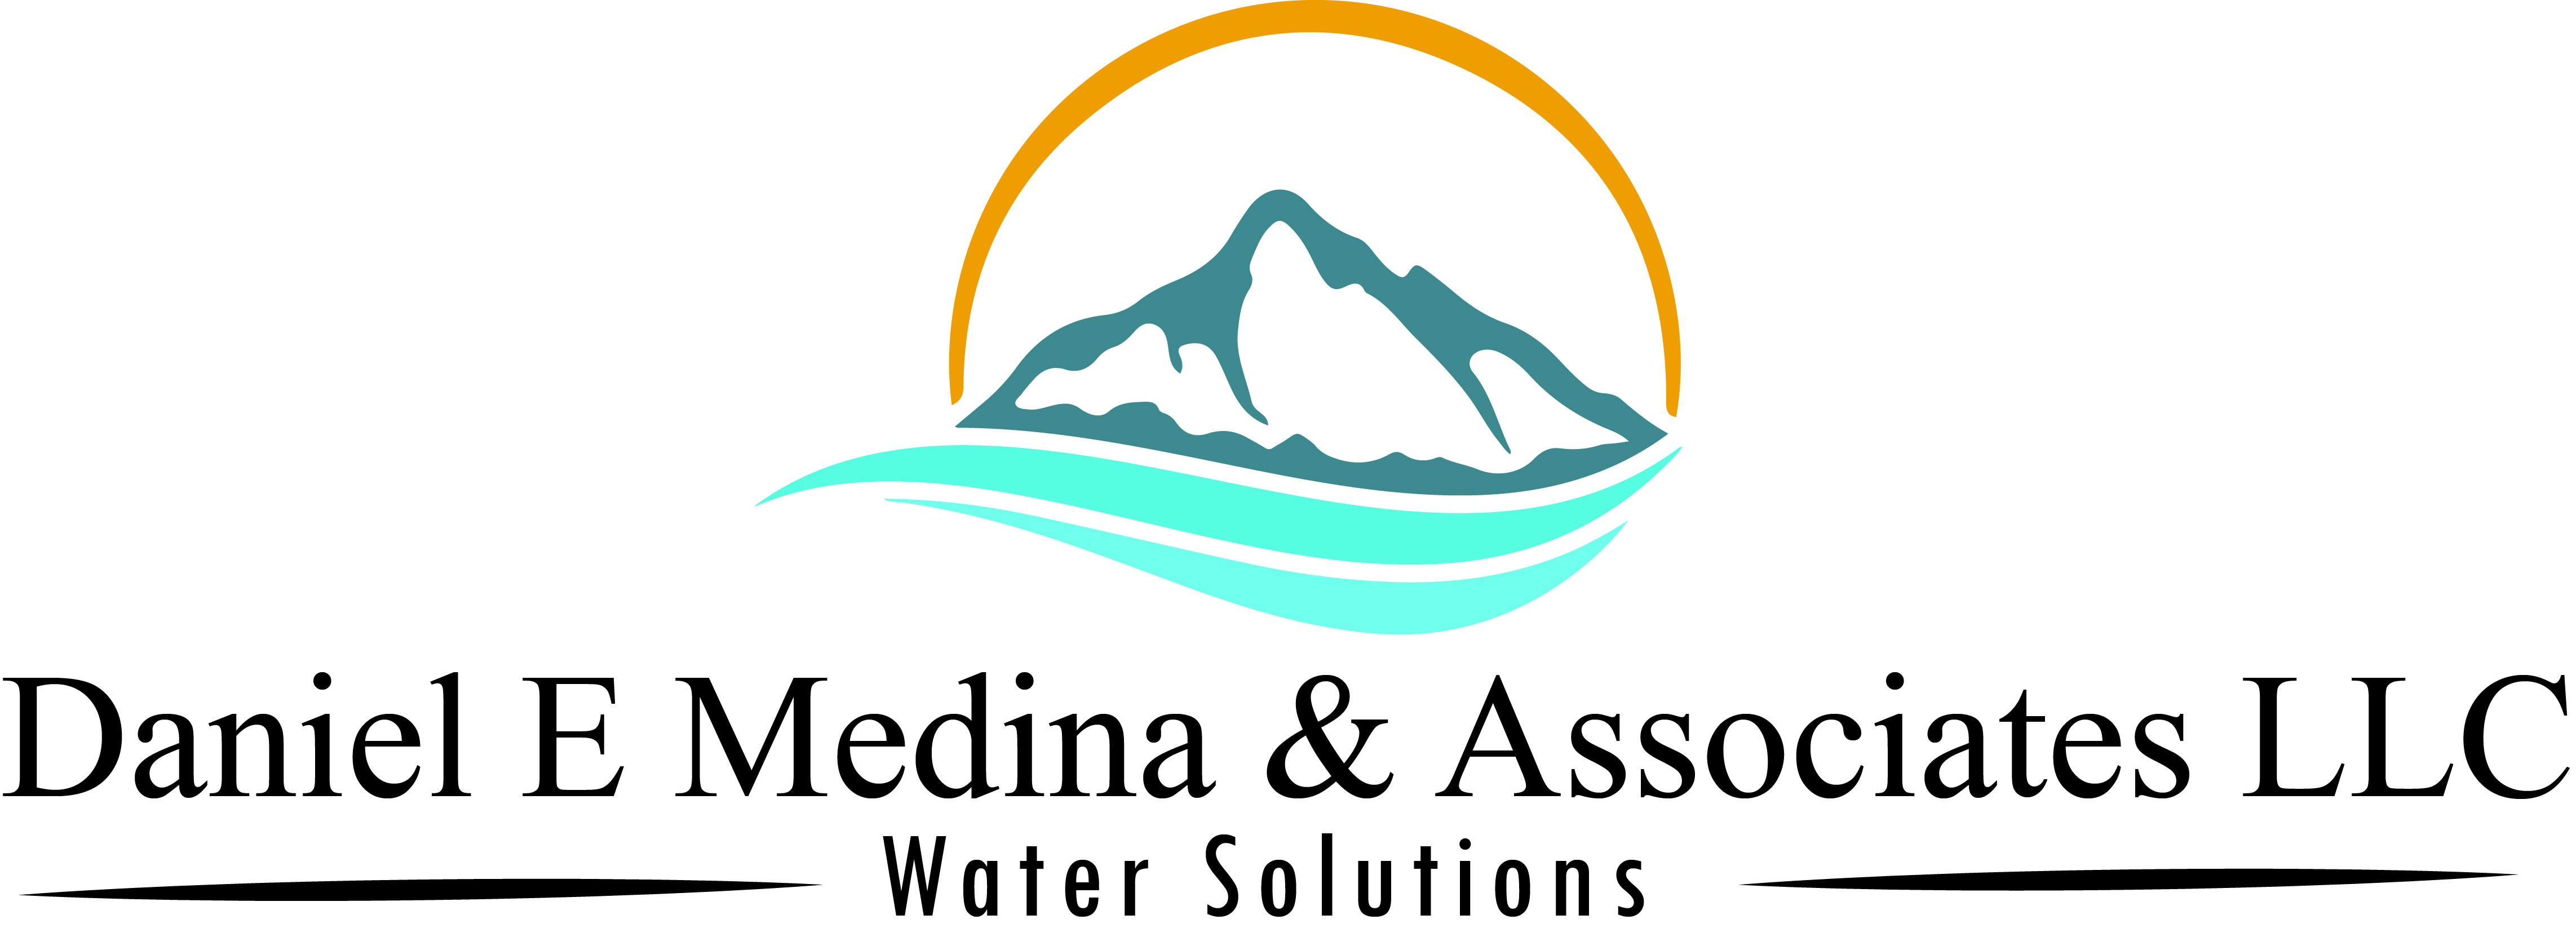 Engineering Firm Daniel E Medina & Associates LLC logo